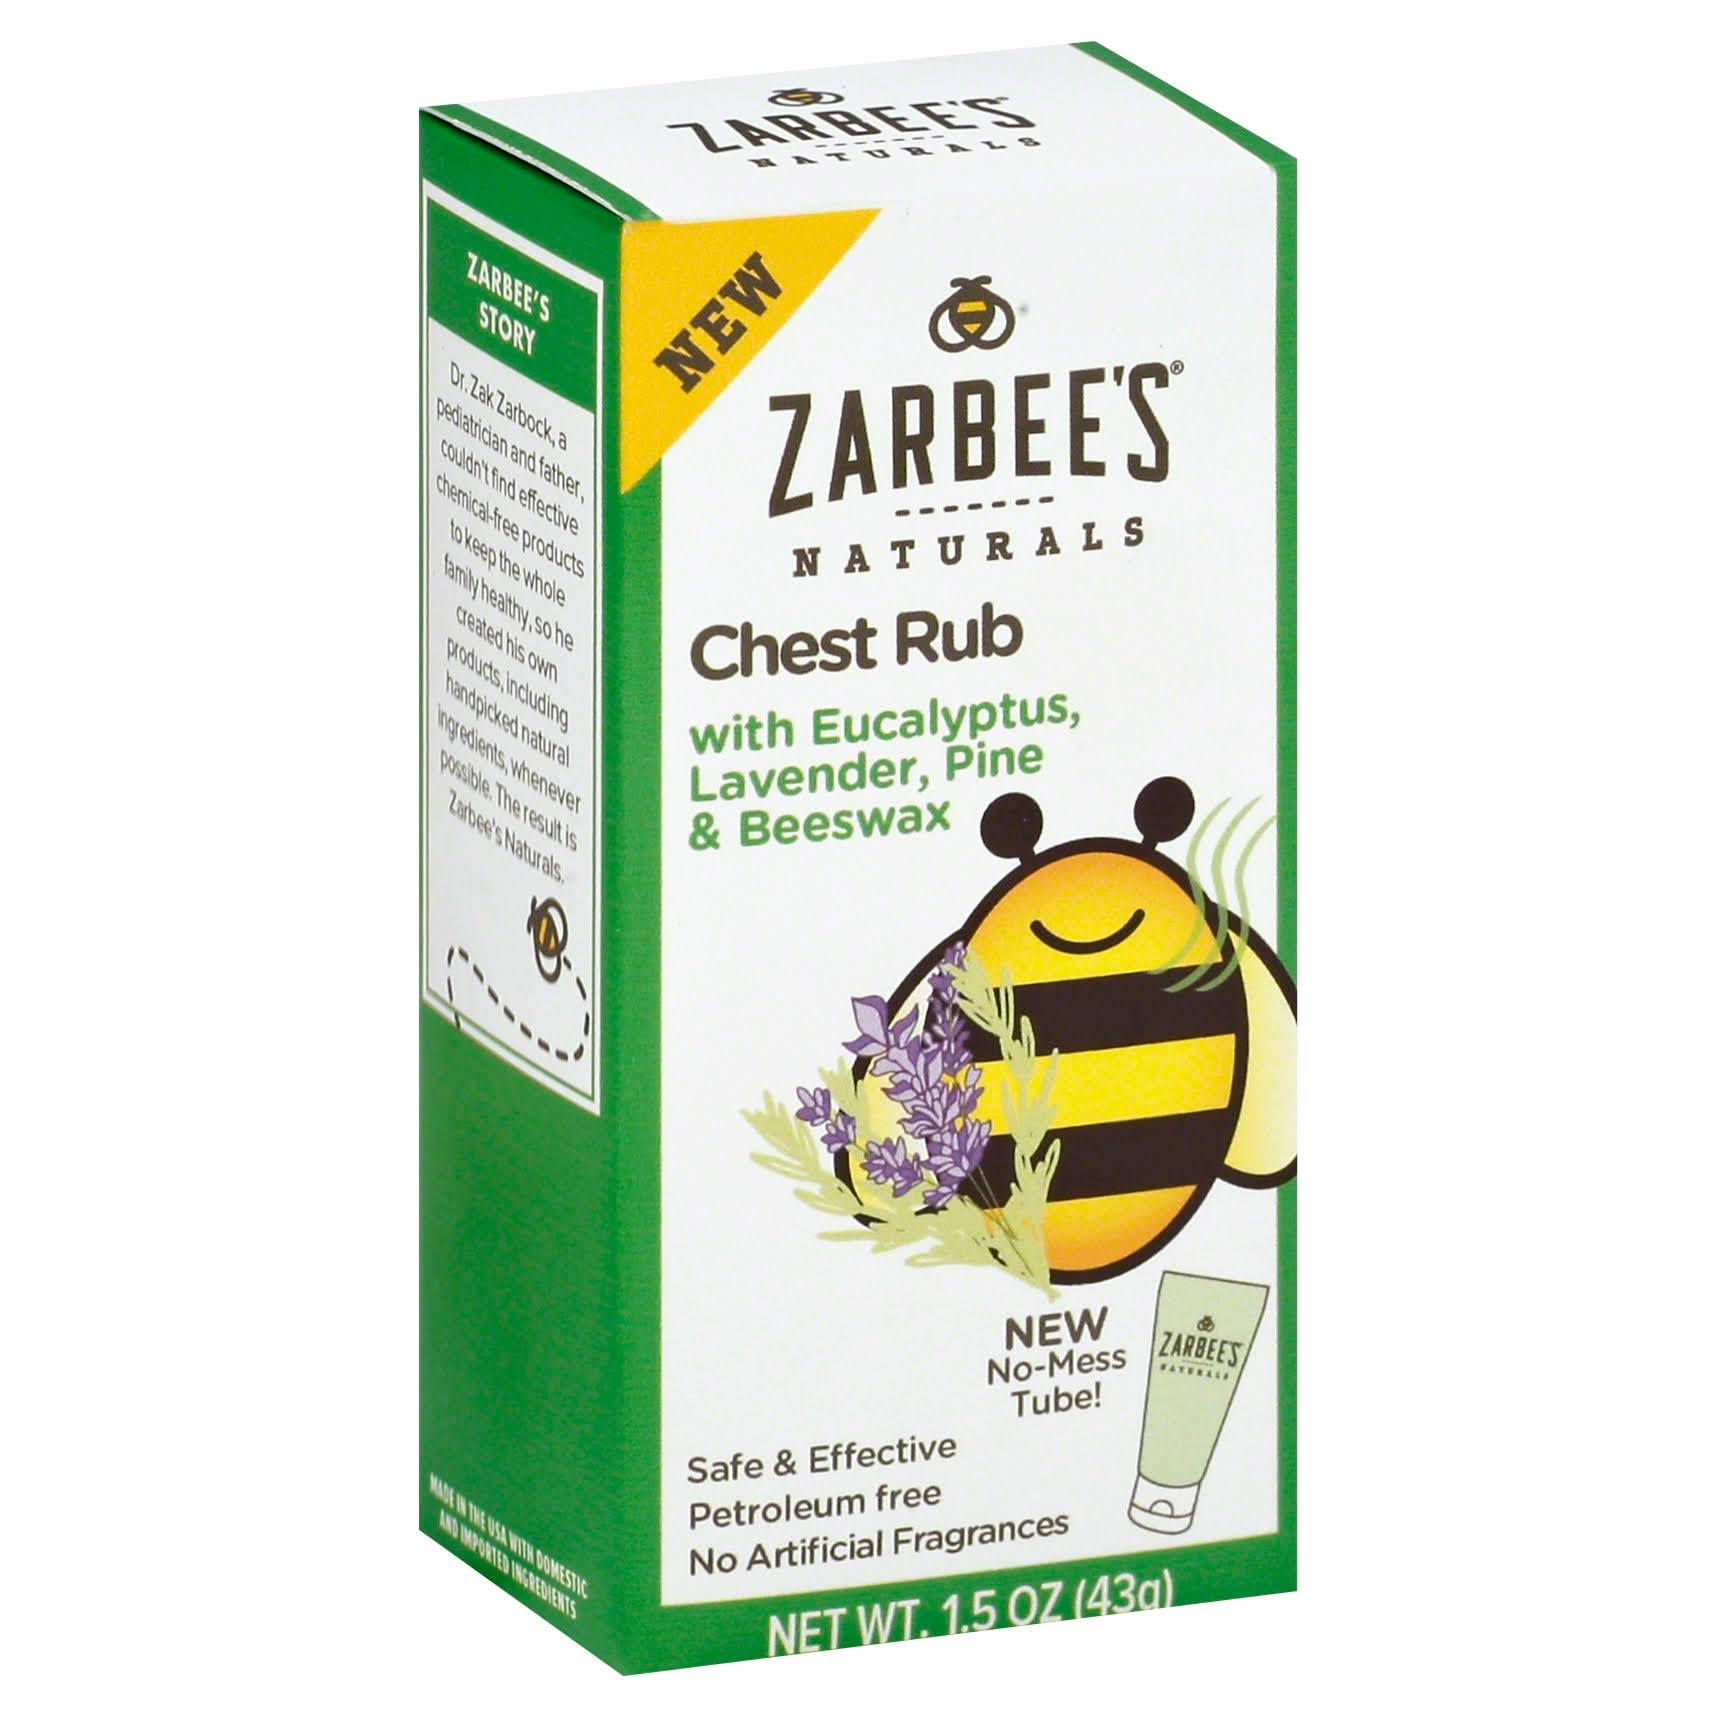 Zarbee's Naturals Chest Rub - 1.5oz